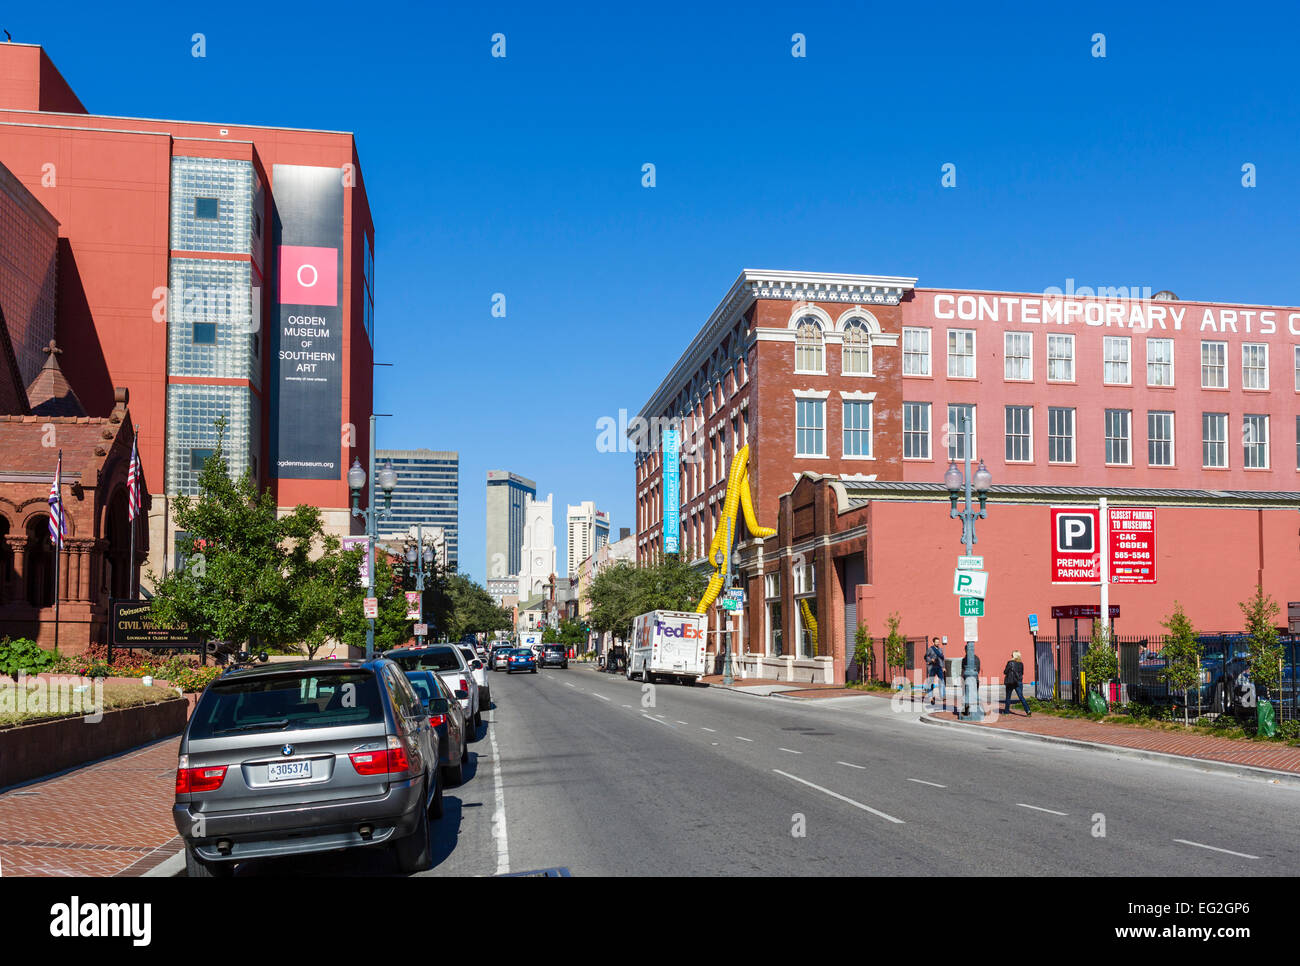 Contemporary Arts Center and Ogden Museum of Southern Art on Camp Street in downtown New Orleans, Lousiana, USA - Stock Image